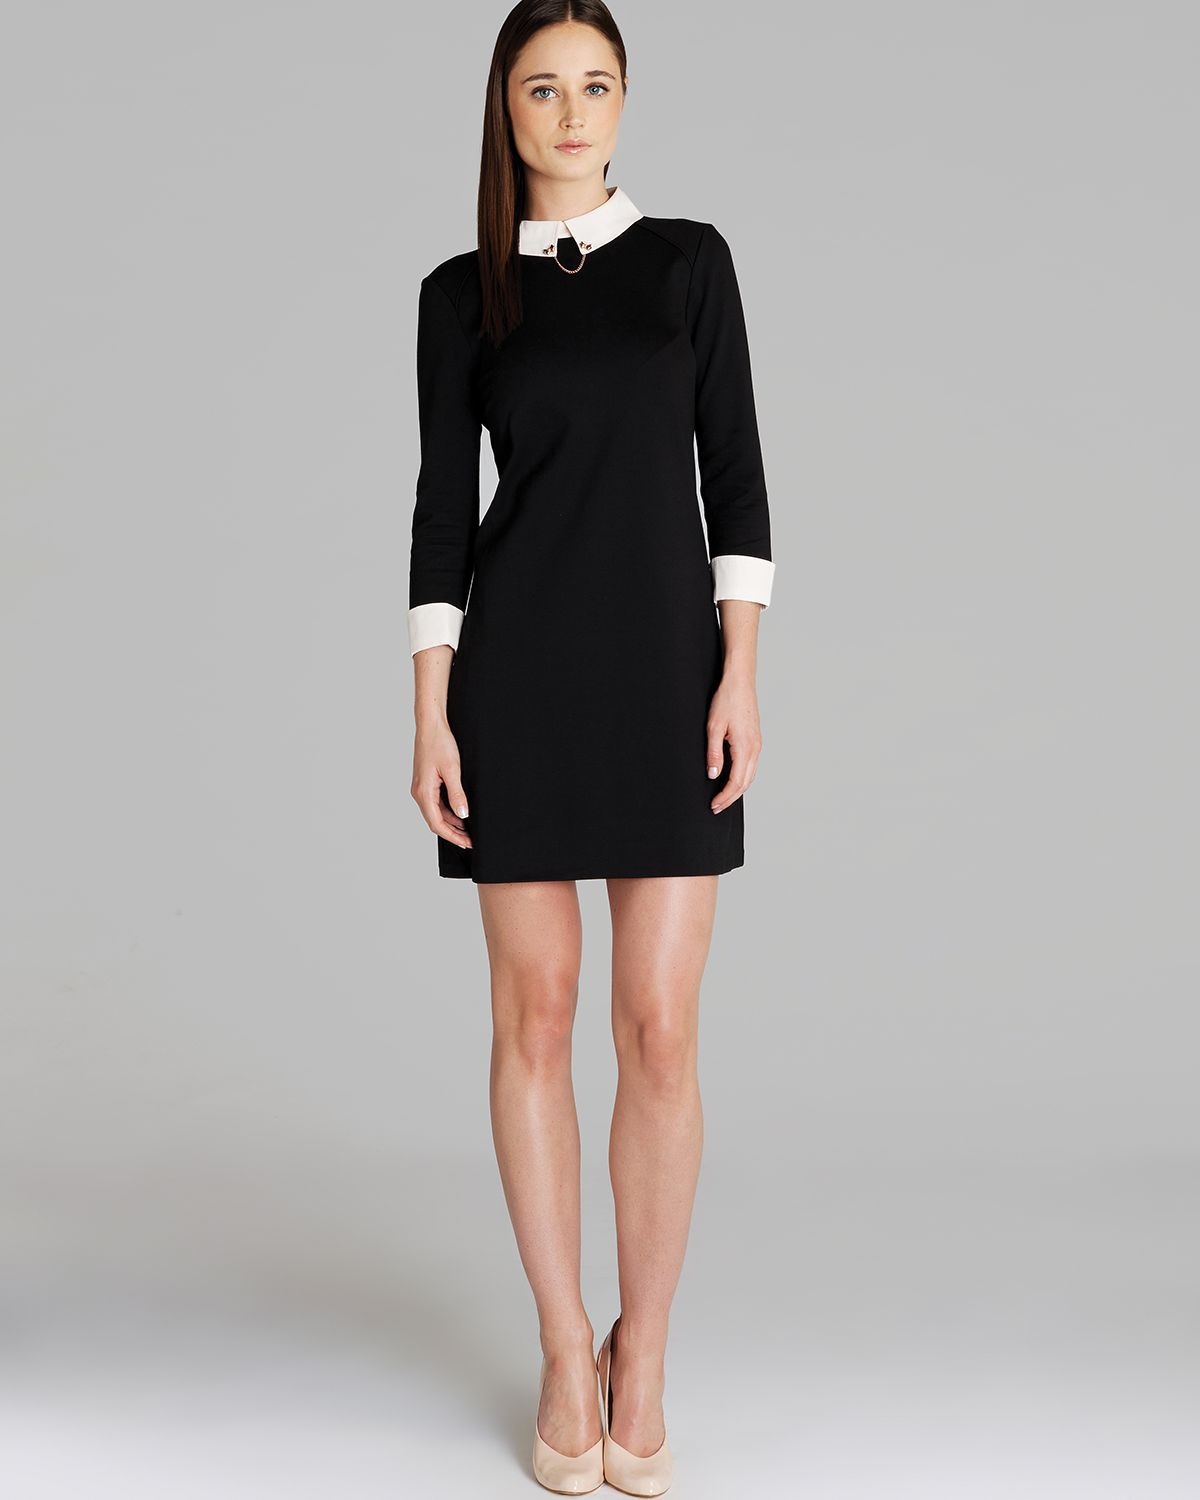 Black dress with white peter pan collar - 17 Best Ideas About Ted Baker Black Dress On Pinterest Ted Baker